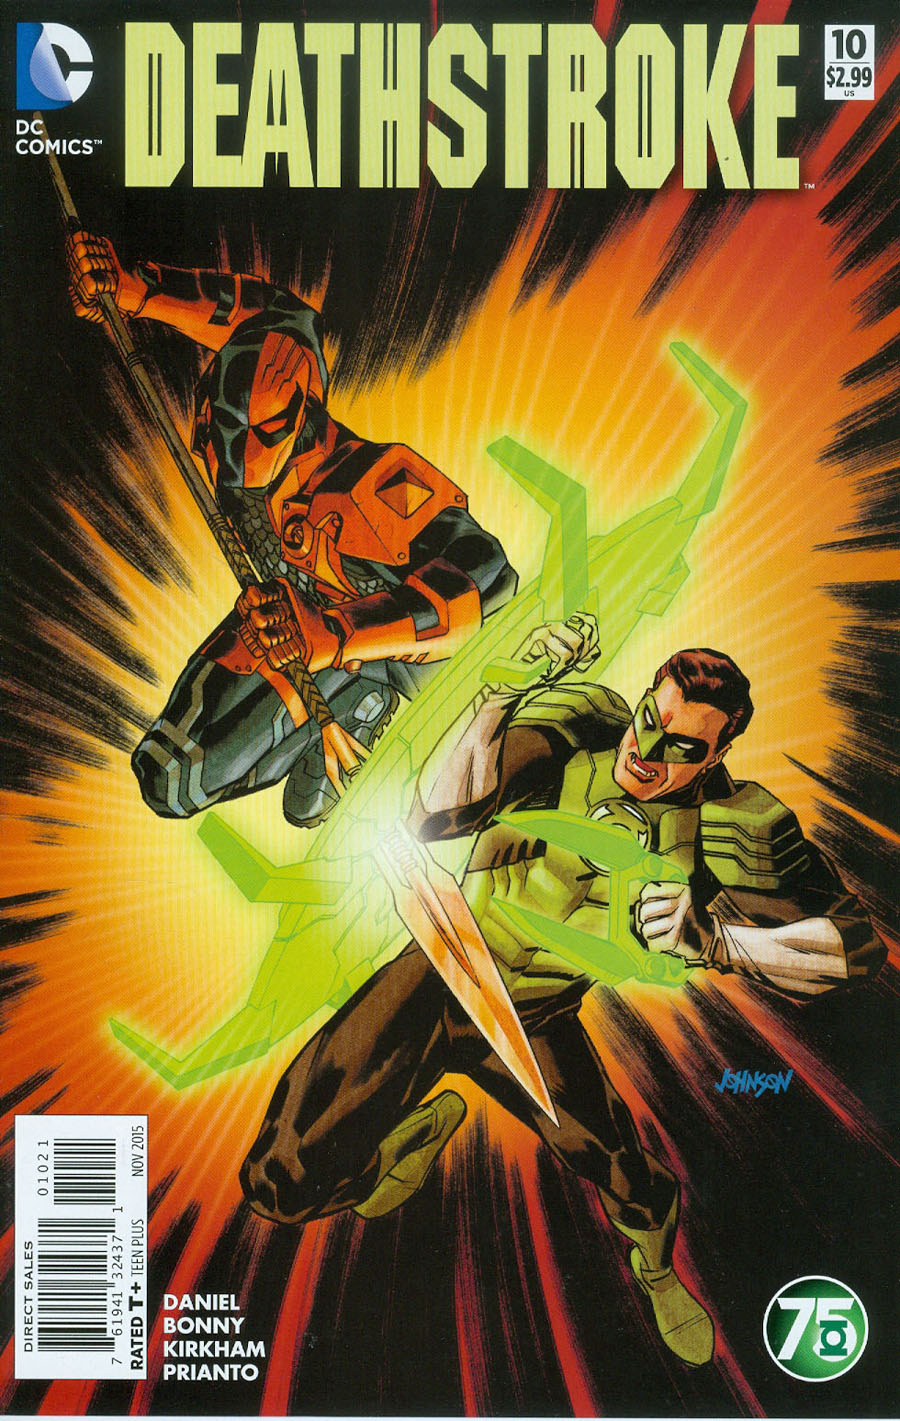 Deathstroke Vol 3 #10 Cover B Variant Dave Johnson Green Lantern 75th Anniversary Cover